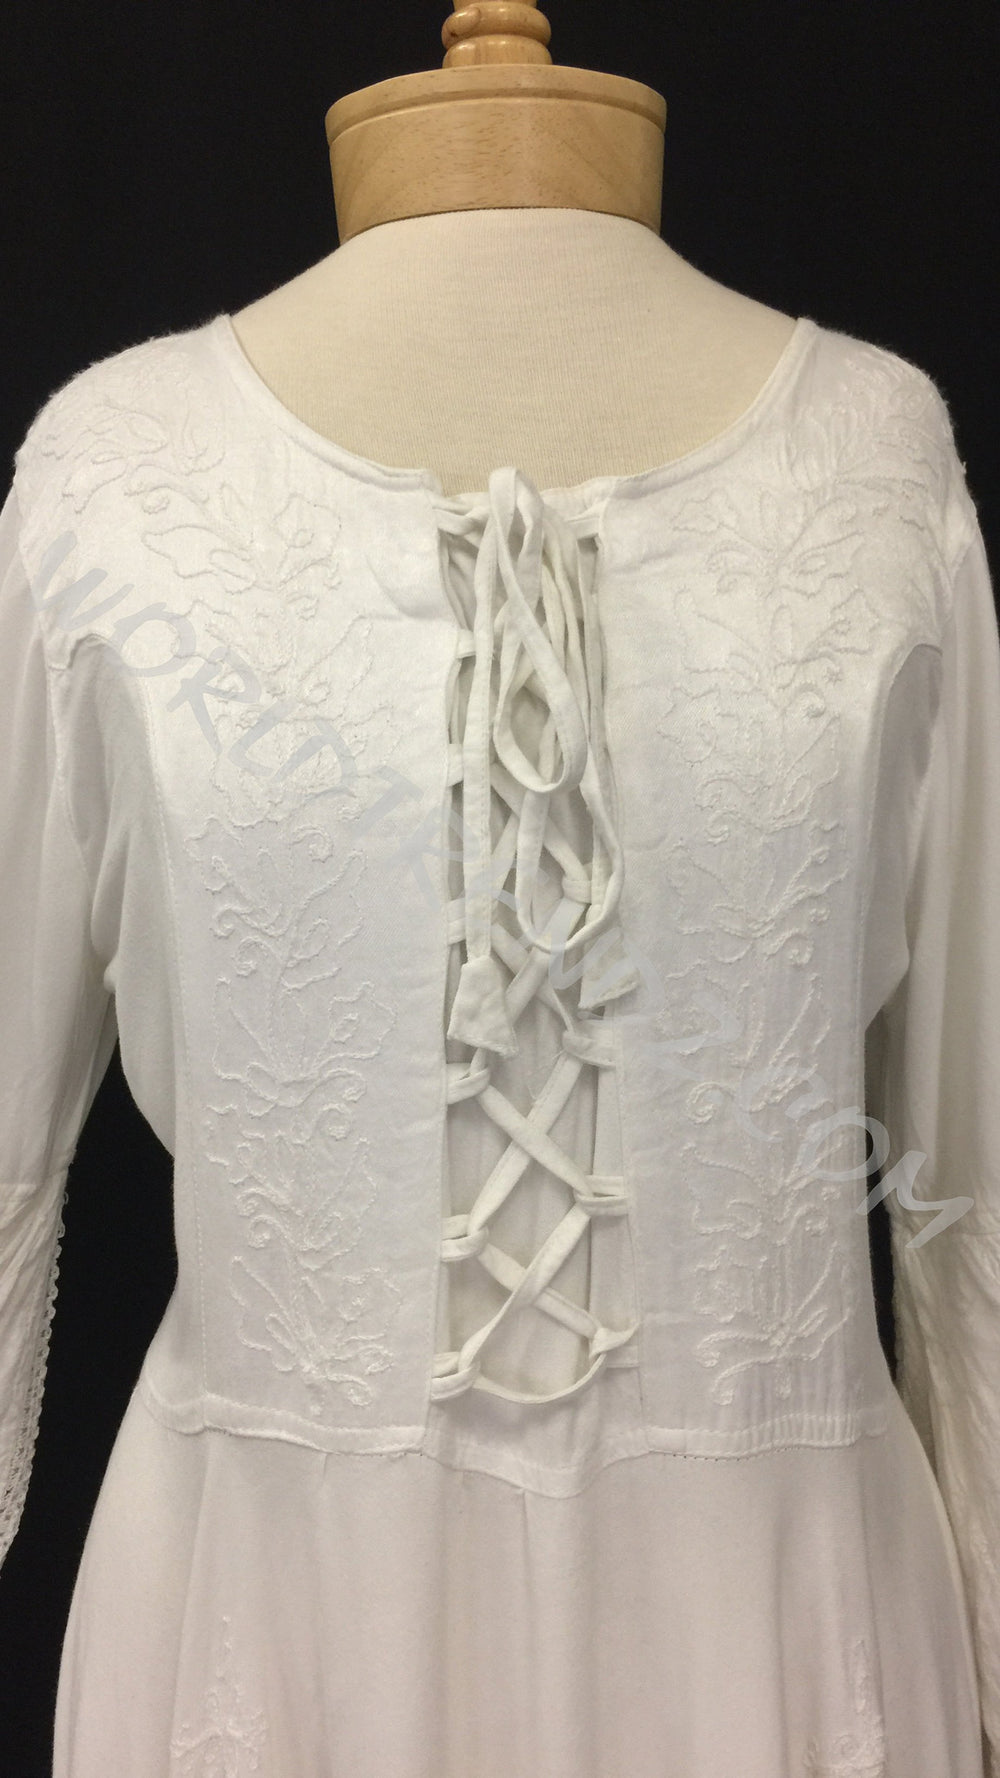 LACE-UP MEDIEVAL STYLE DRESS MAXI LENGTH WHITE FRONT DETAIL